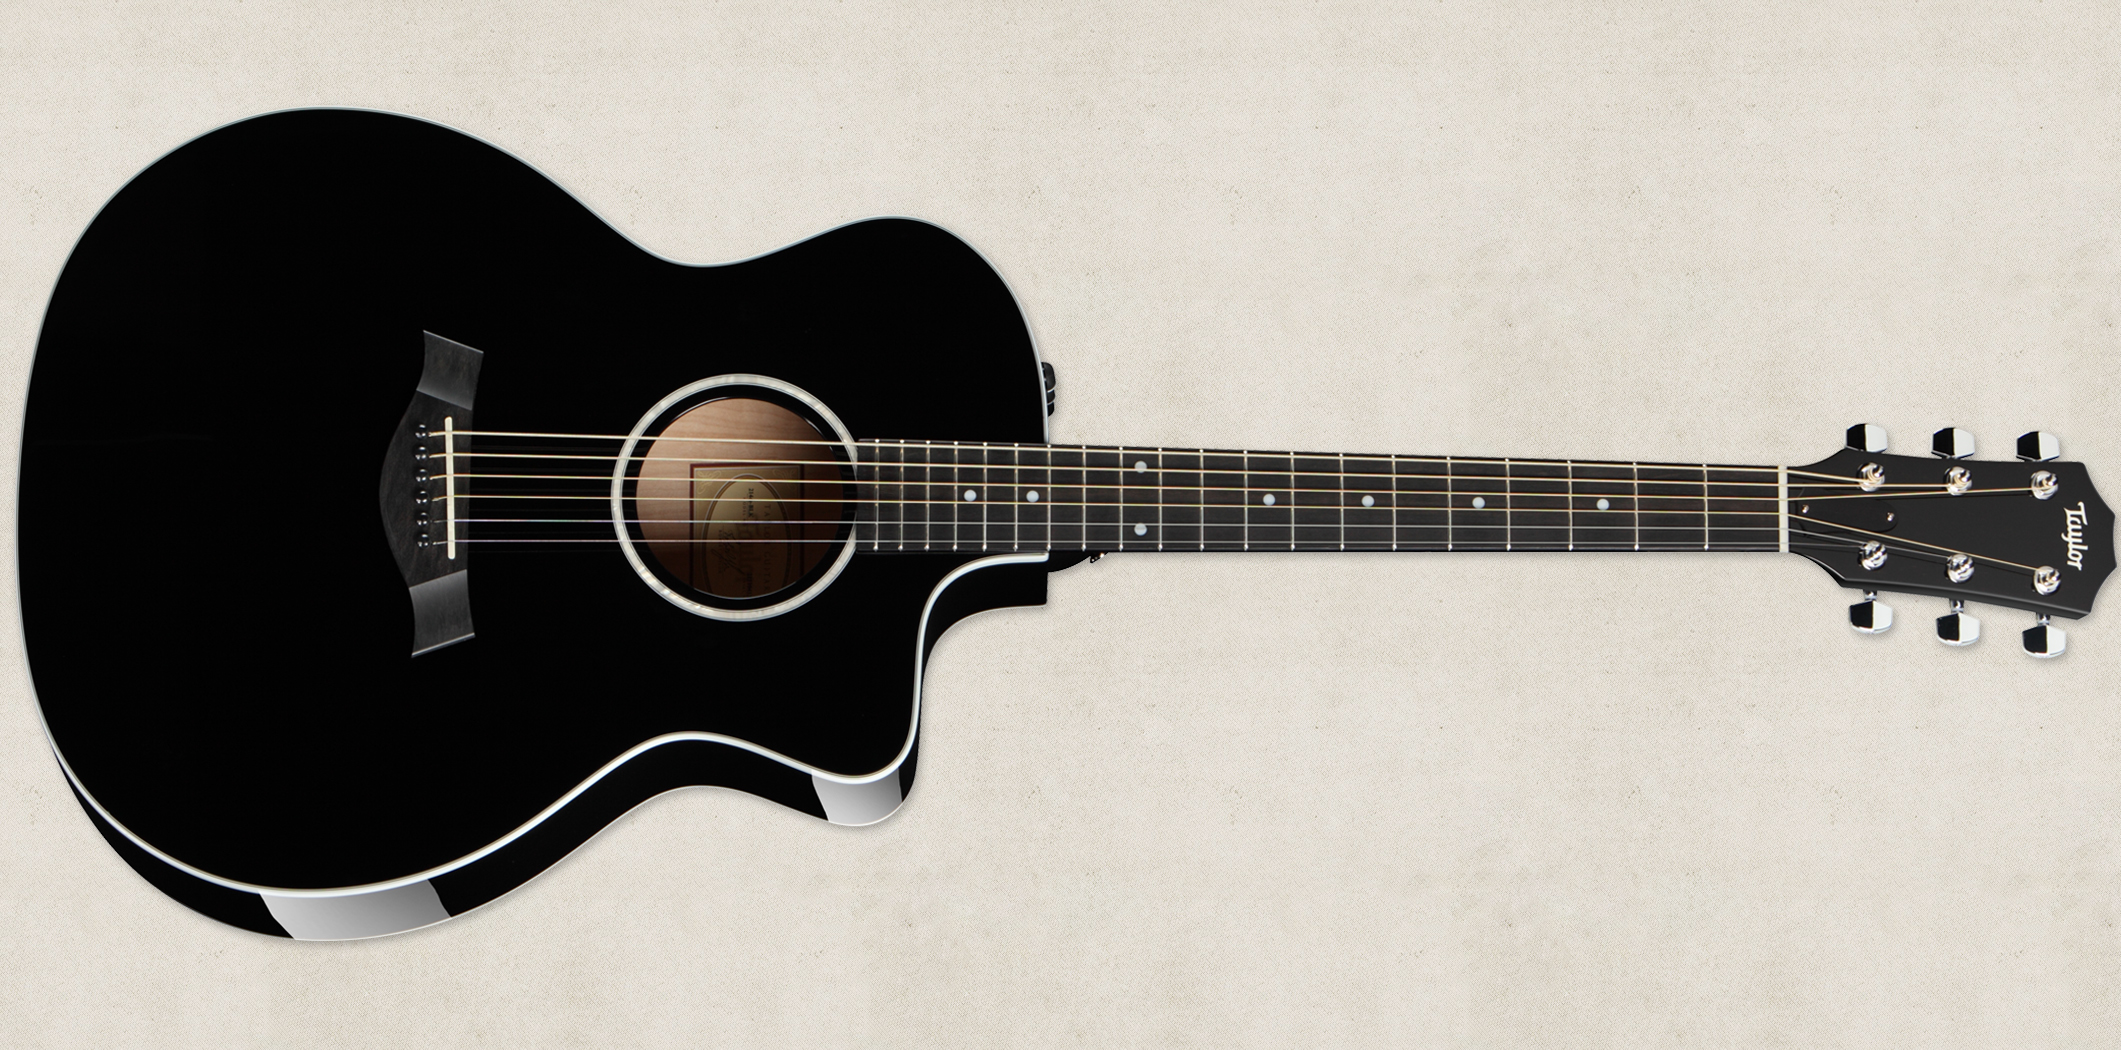 Taylor guitars are used by many modern guitar players such as Taylor Swift, Mateus Asato, Chelsea Wolfe, and many leading-edge musicians. Fact Both companies, Martin and Taylor produce guitars such that it can be plugged into an amp.